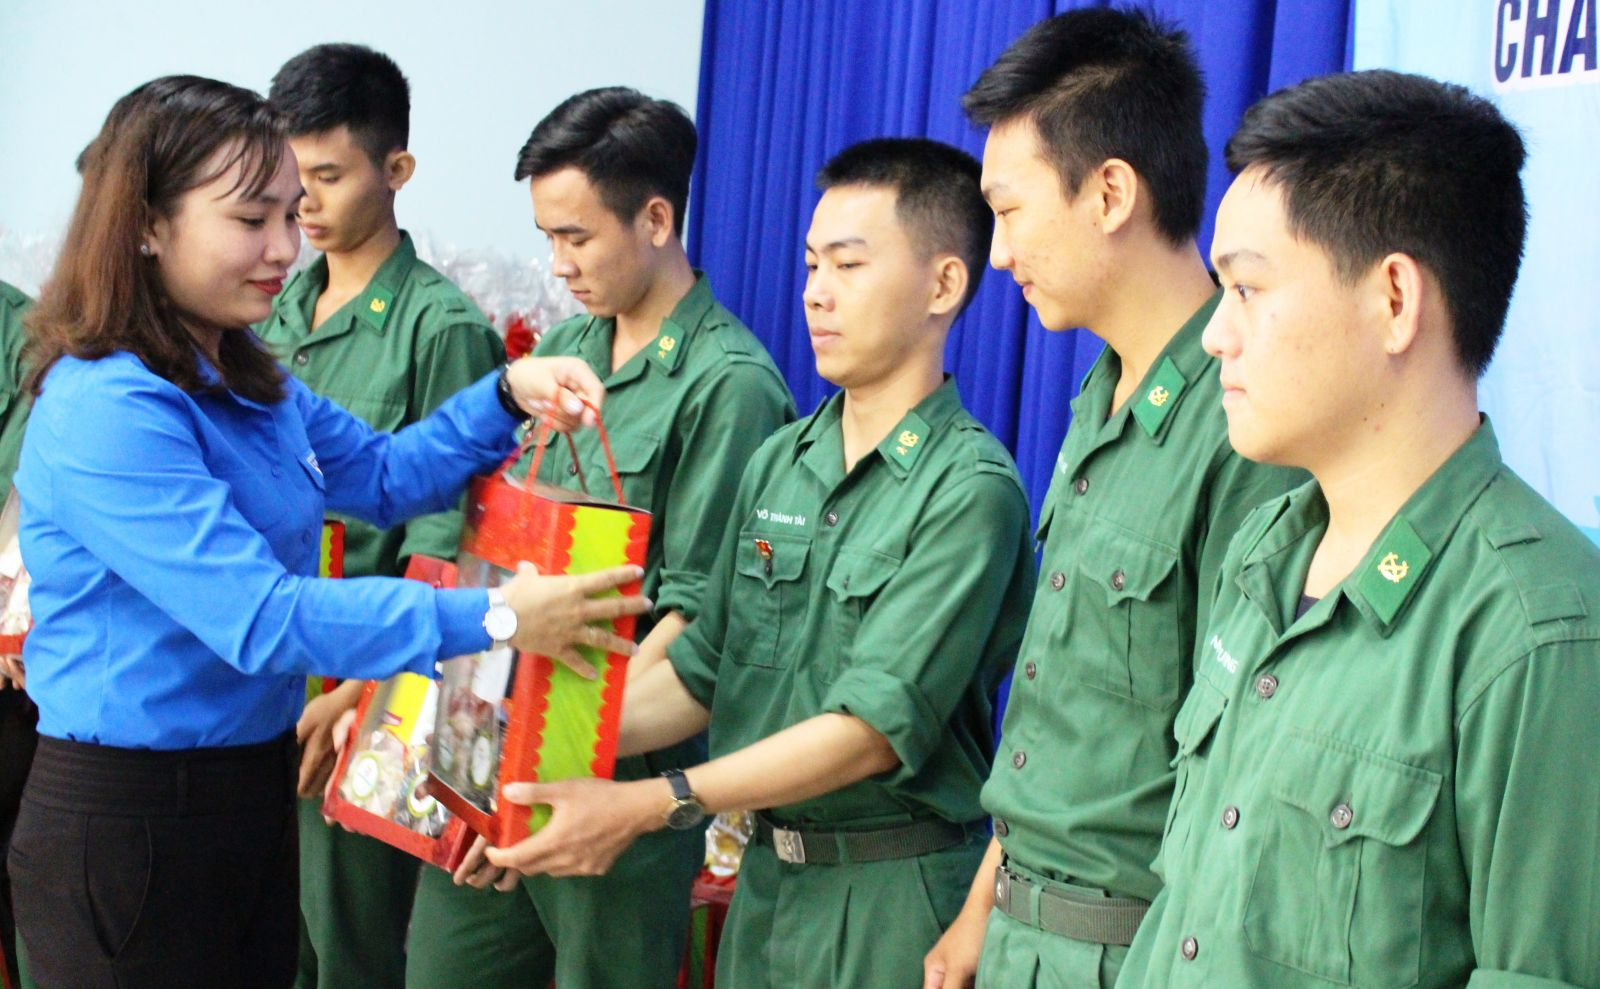 Deputy Secretary of Long An Youth Union - Le Thi Cam Tu presents gifts to disadvantaged soldiers